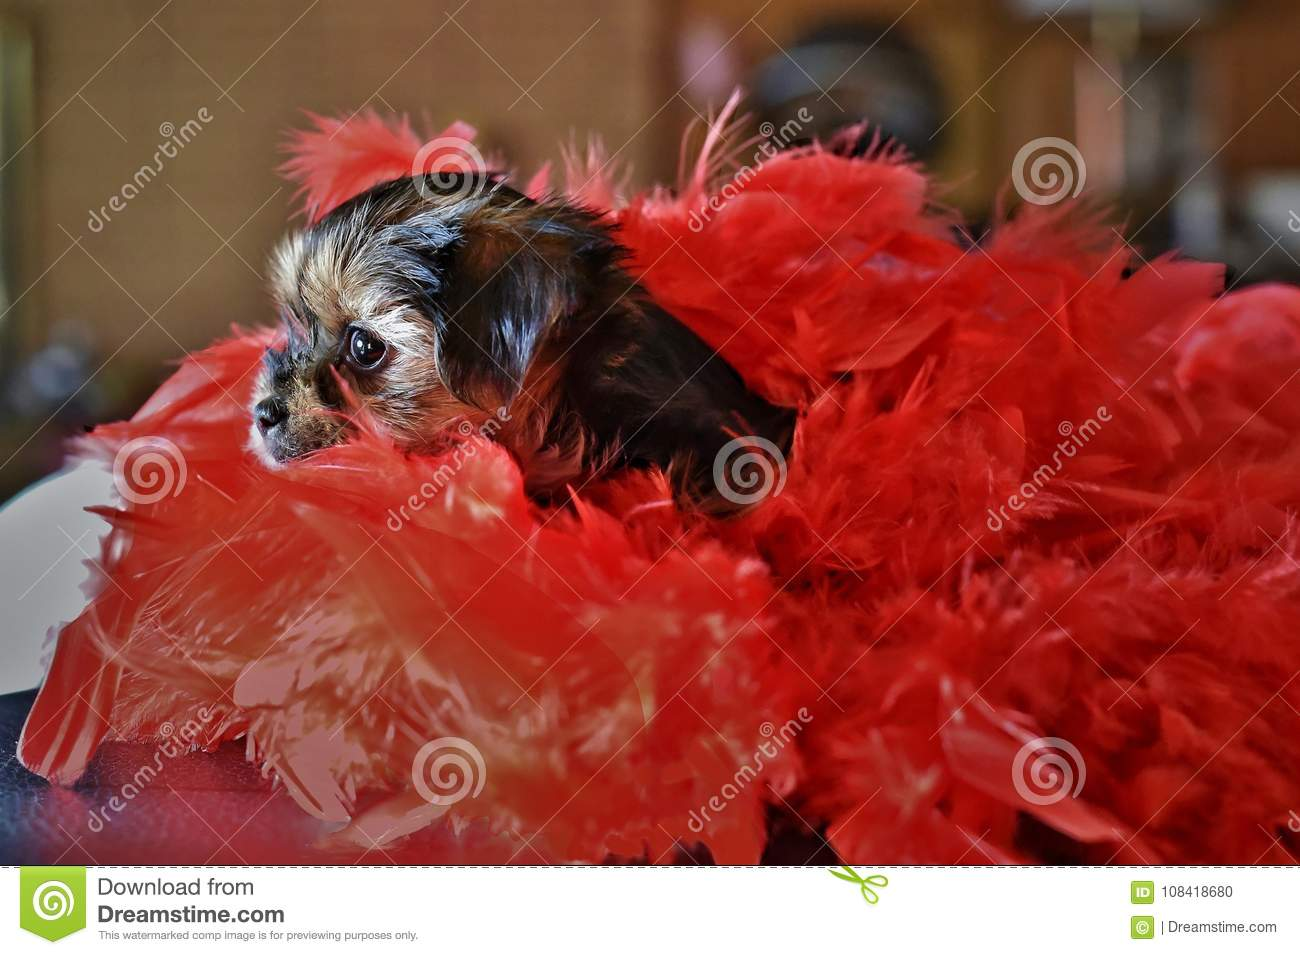 Cute Yorkie Shih Tzu Puppy With Red Boa Stock Photo Image Of Sticking Sitting 108418680